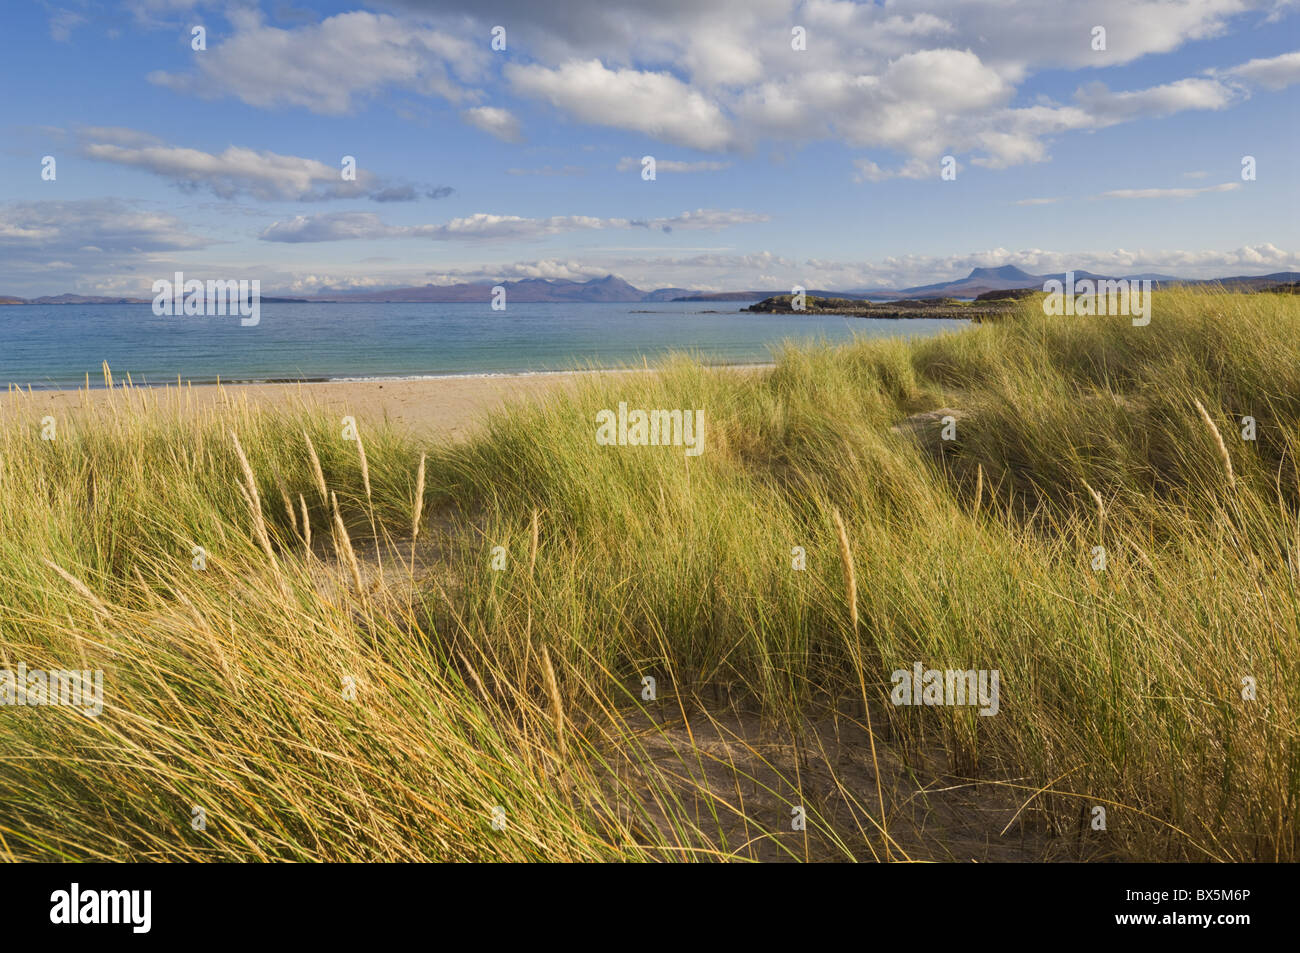 Sand dunes and dune grasses of Mellon Udrigle beach, Wester Ross, north west Scotland, United Kingdom, Europe - Stock Image